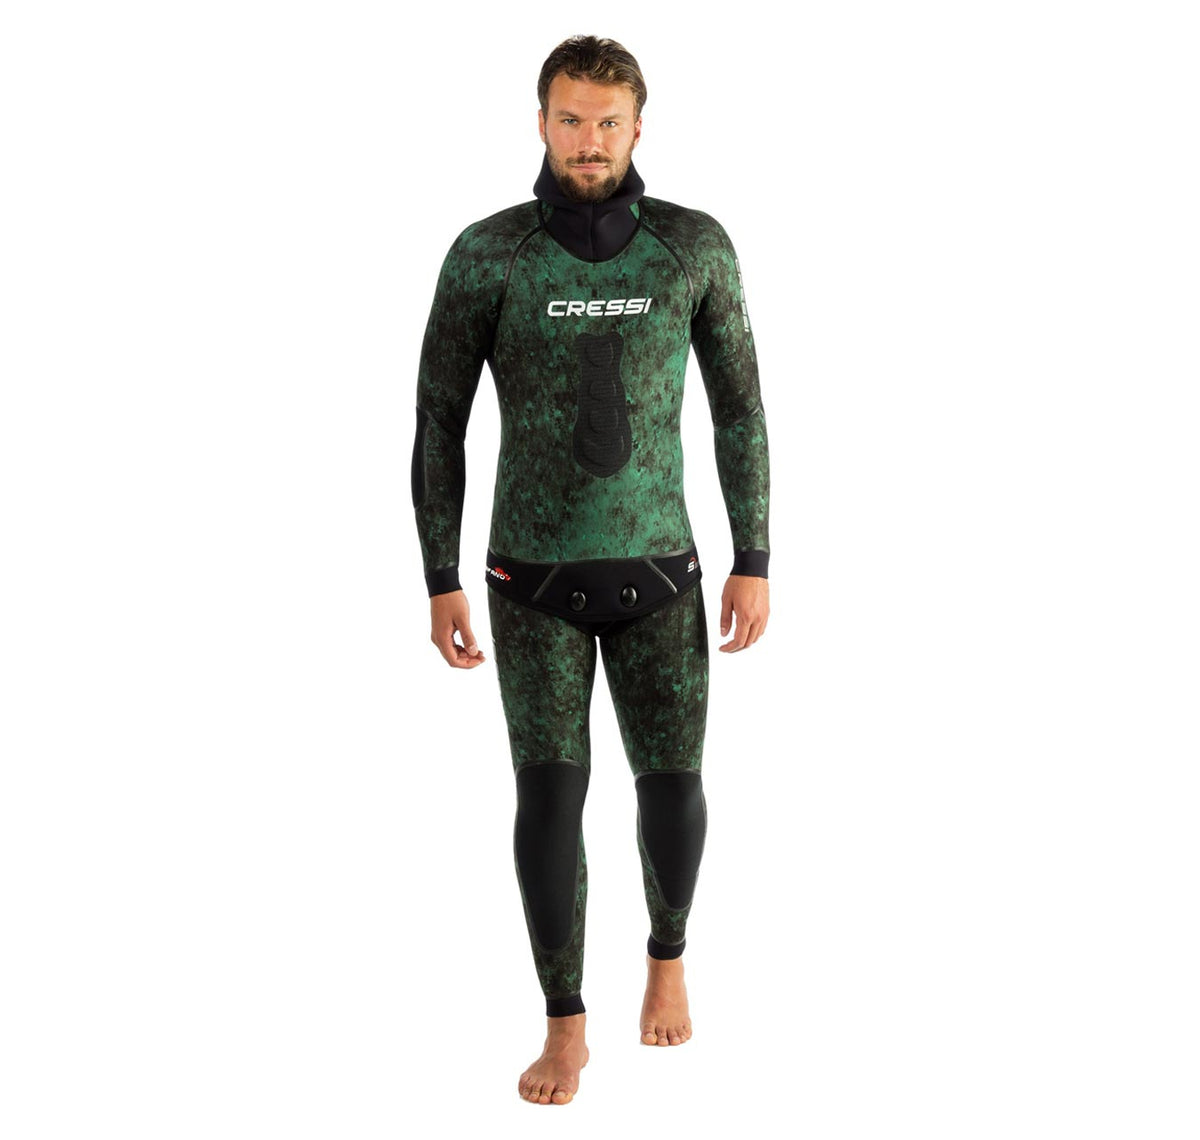 Cressi Scorfano 3.5mm 2 Piece Wetsuit Front